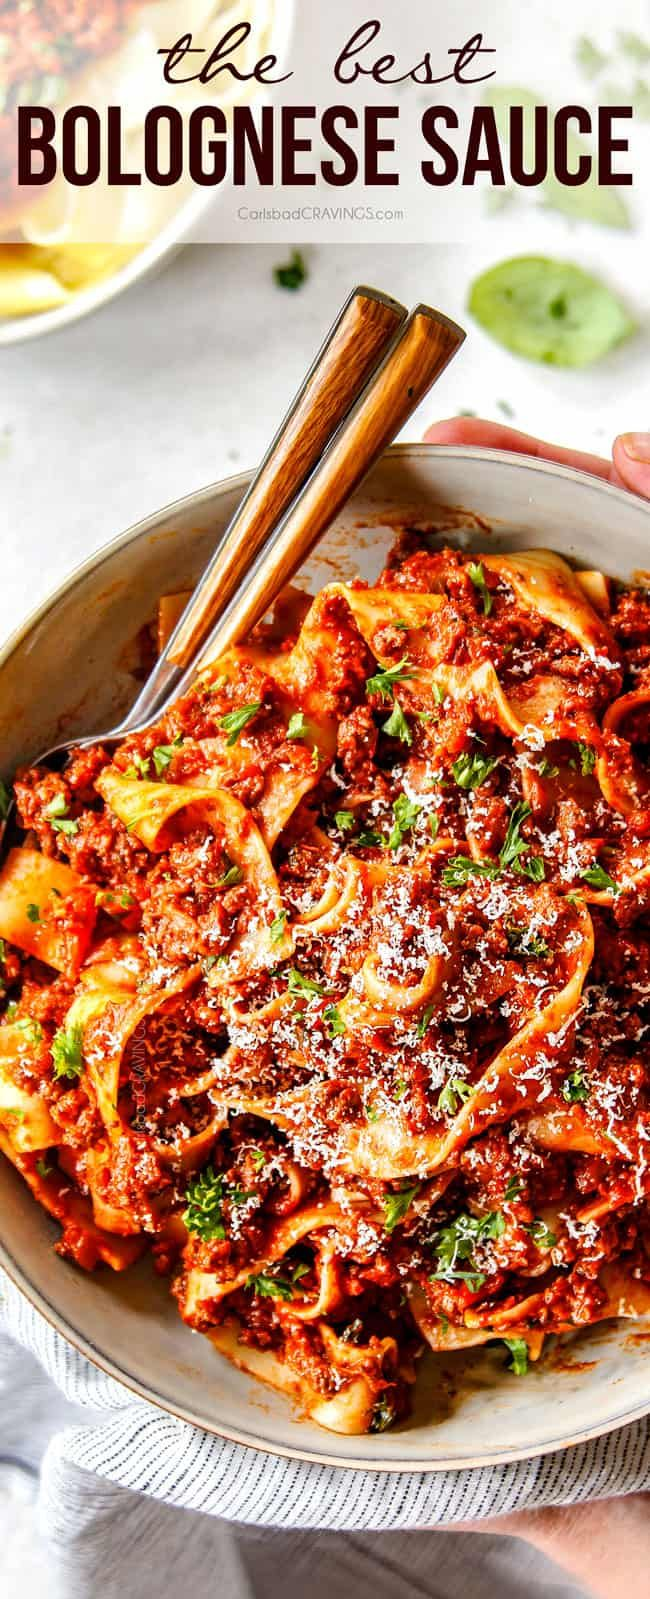 Jan 18, 2020 - Everyone needs the BEST Bolognese Sauce in their recipe repertoire and this is it! This Bolognese recipe is rich, hearty and exploding with complex layers of flavor BUT is on your table in less than one hour and most of that time is hands-off simmering! #bolognese #italianfood #pasta #pastarecipes #dinner #recipes #recipeoftheday #recipesfordinner #dinnerrecipes #dinnerideas